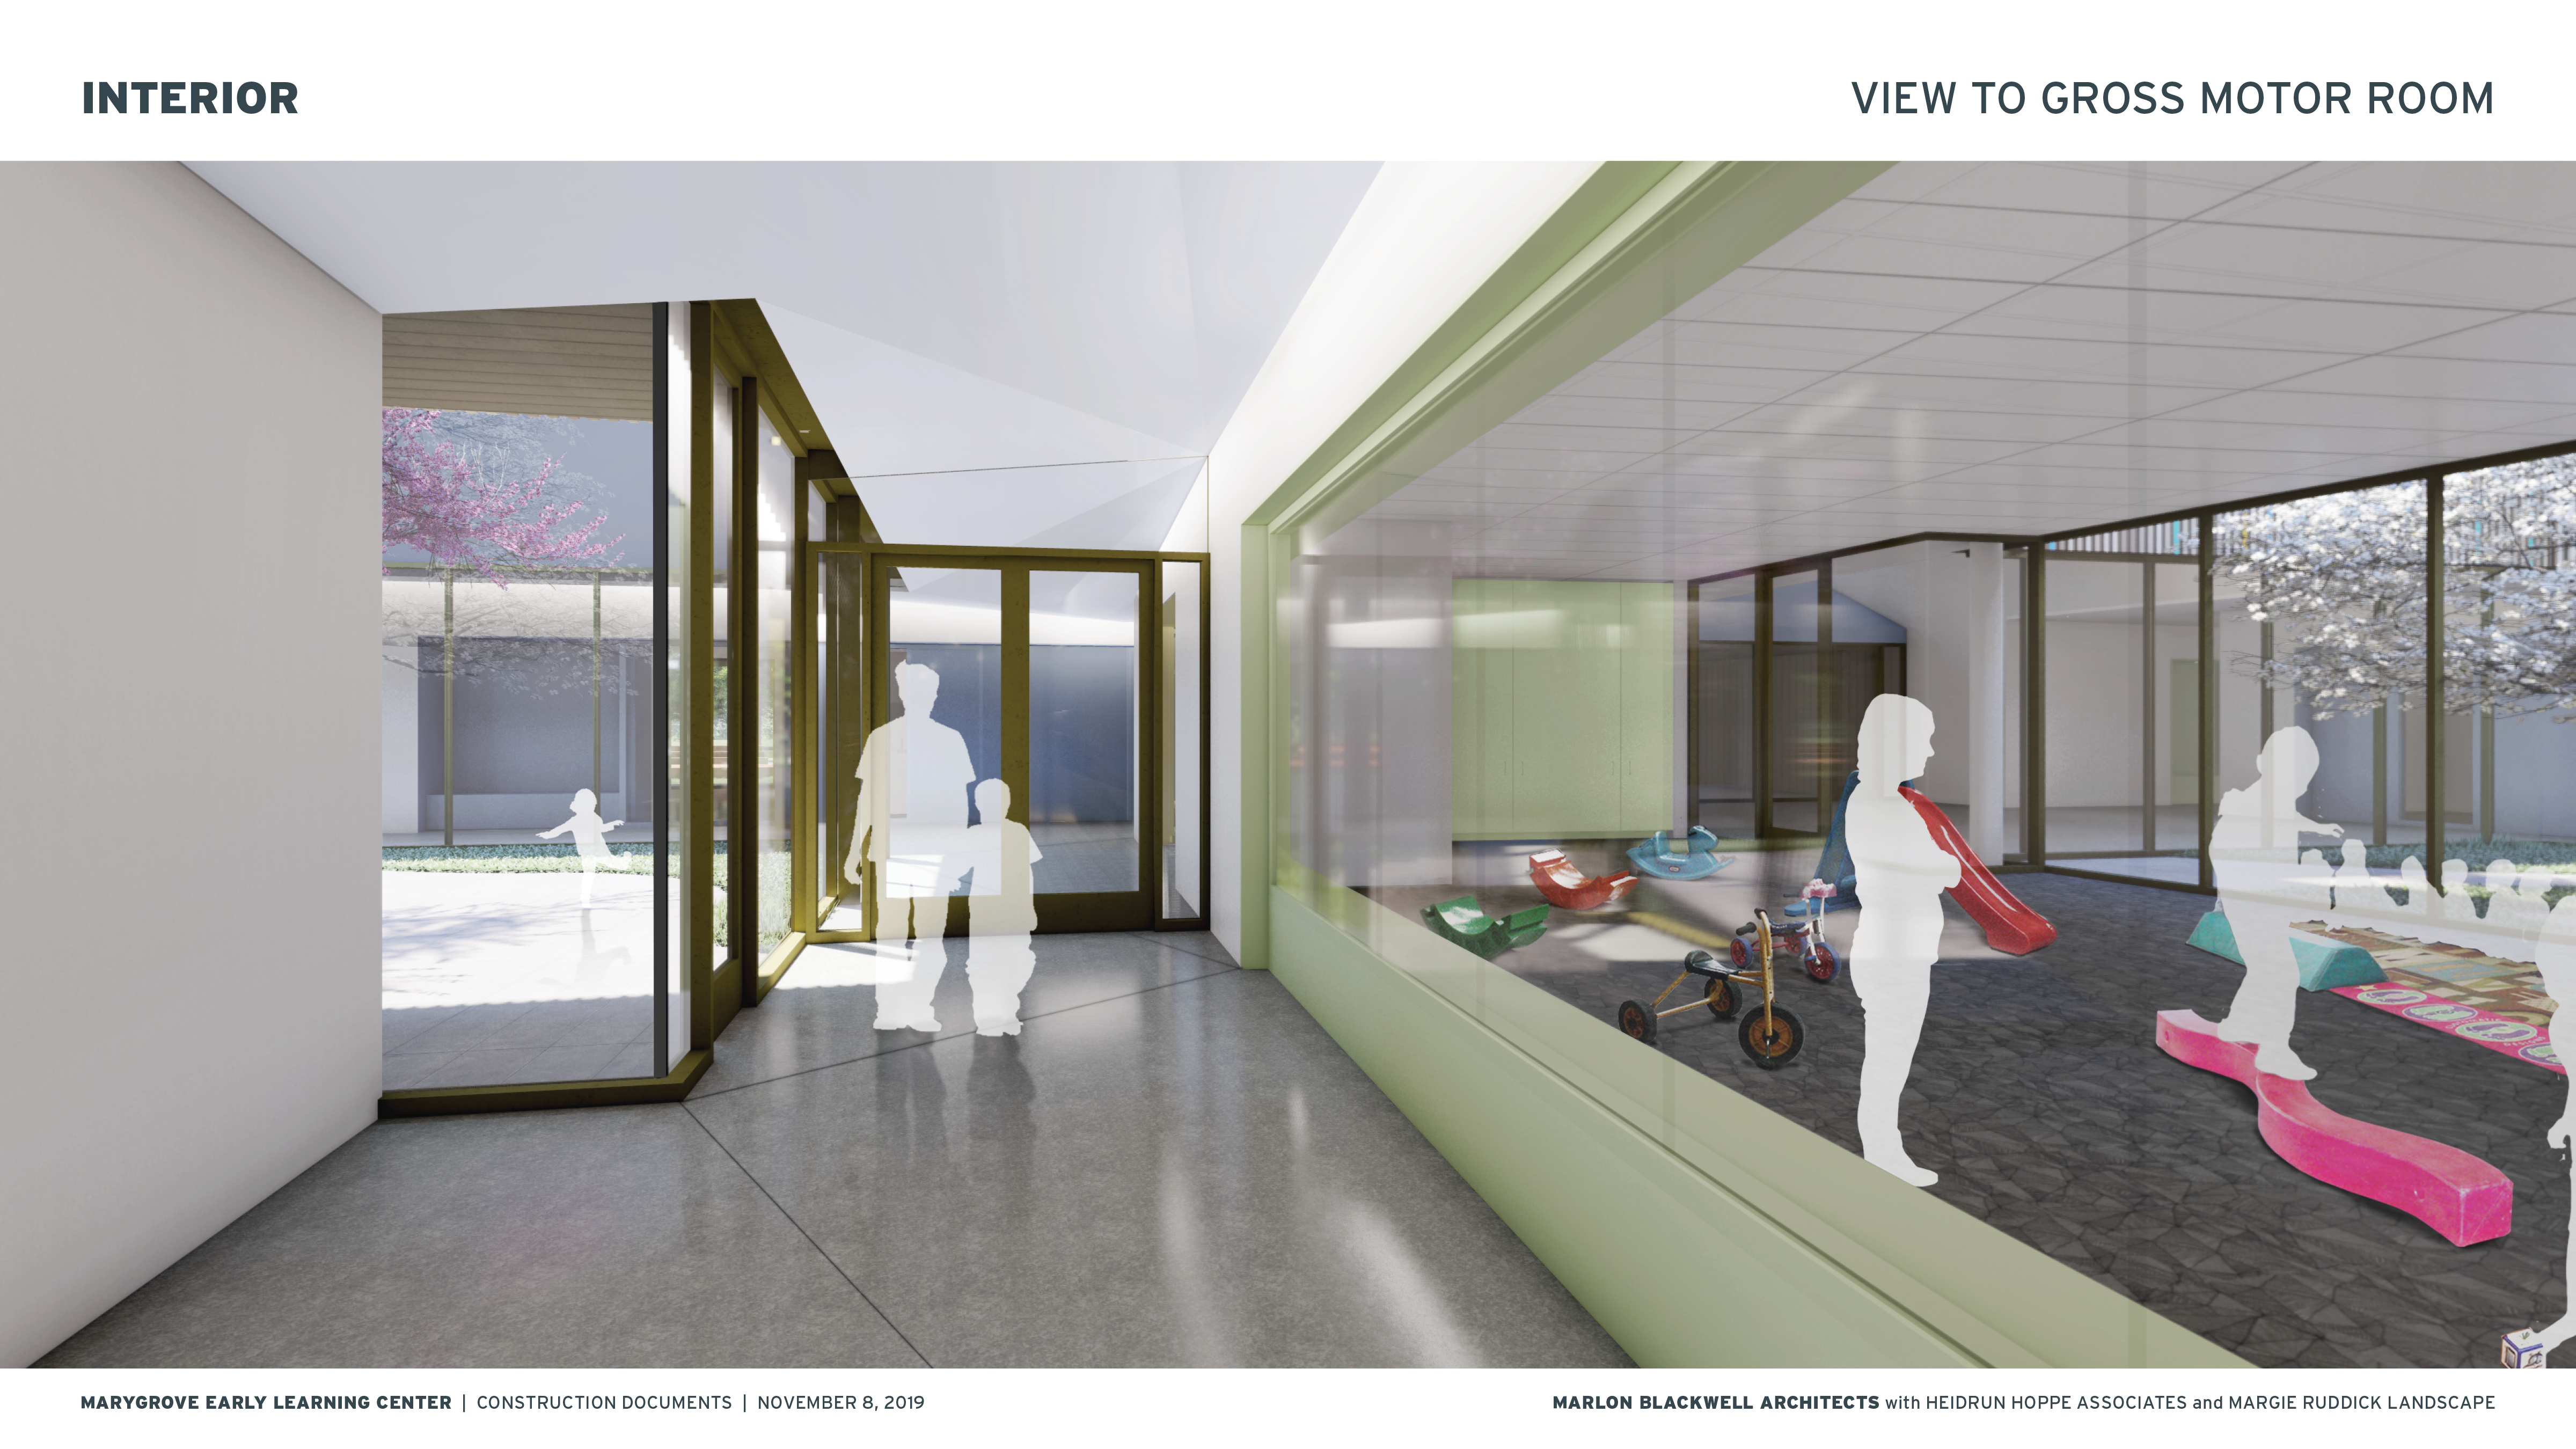 Interior rendering of Early Childhood Education center on Marygrove campus